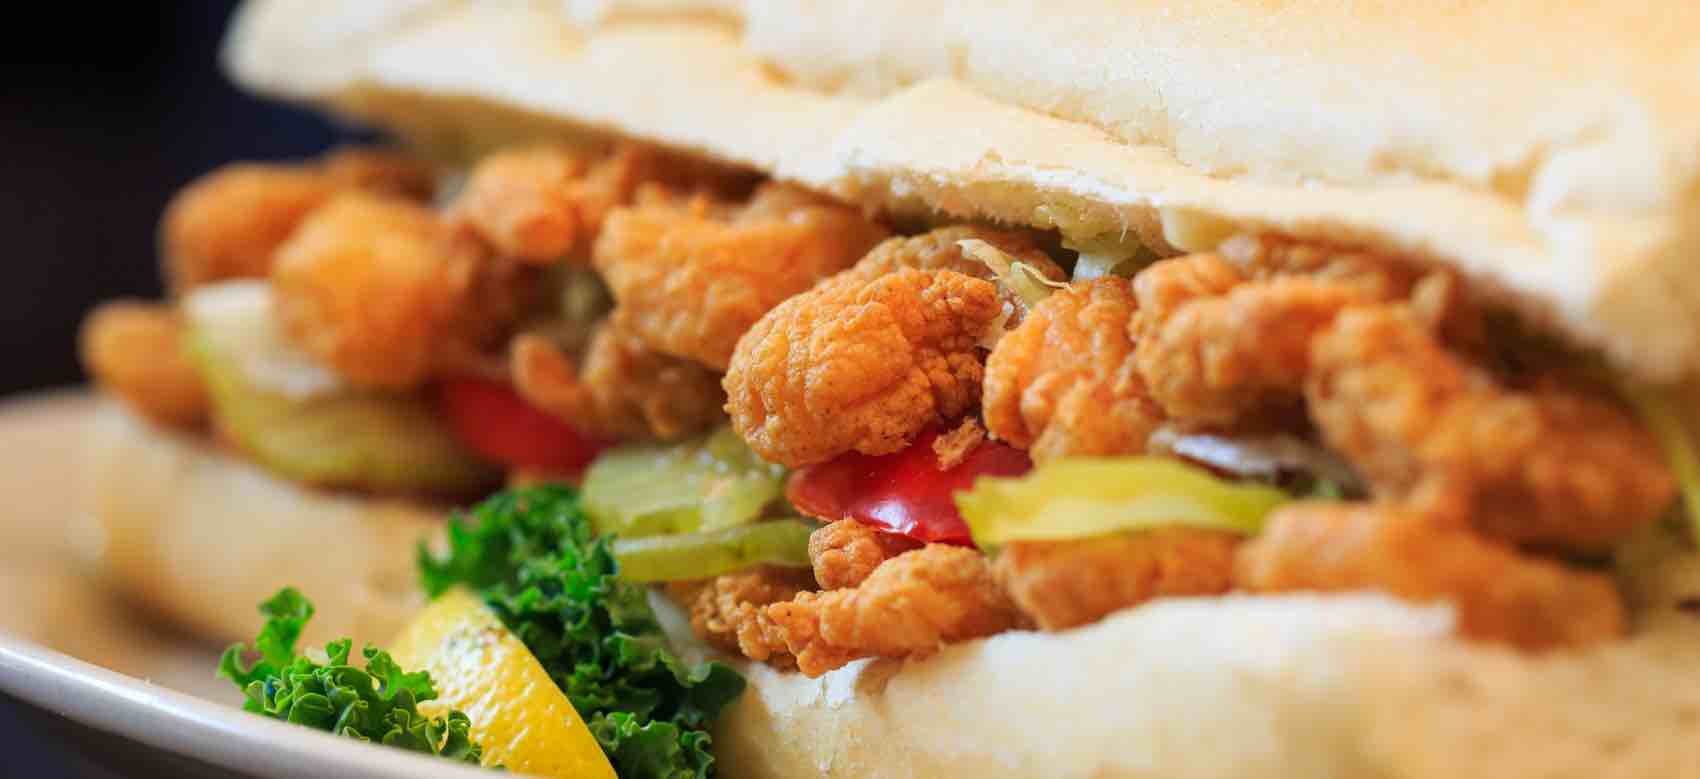 New Orleans Shrimp PoBoy on French Bread